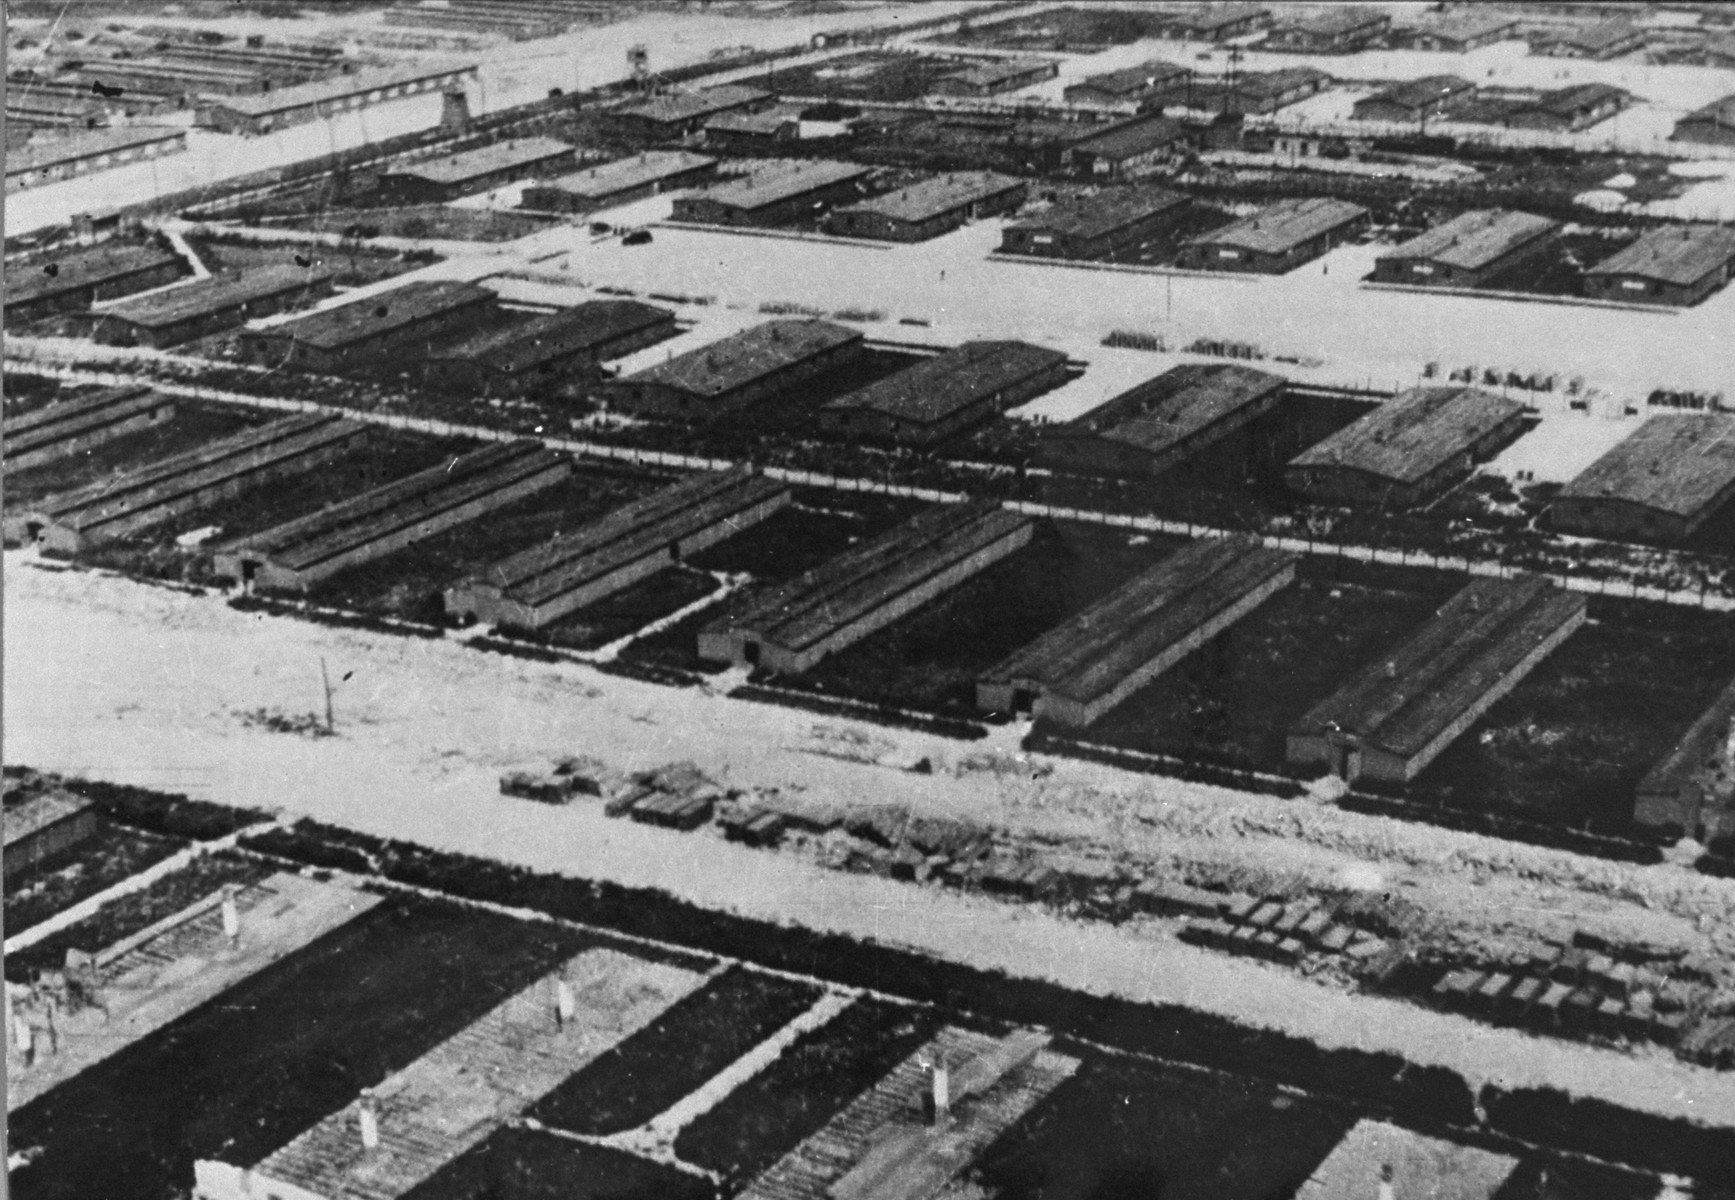 An aerial view of the camp.